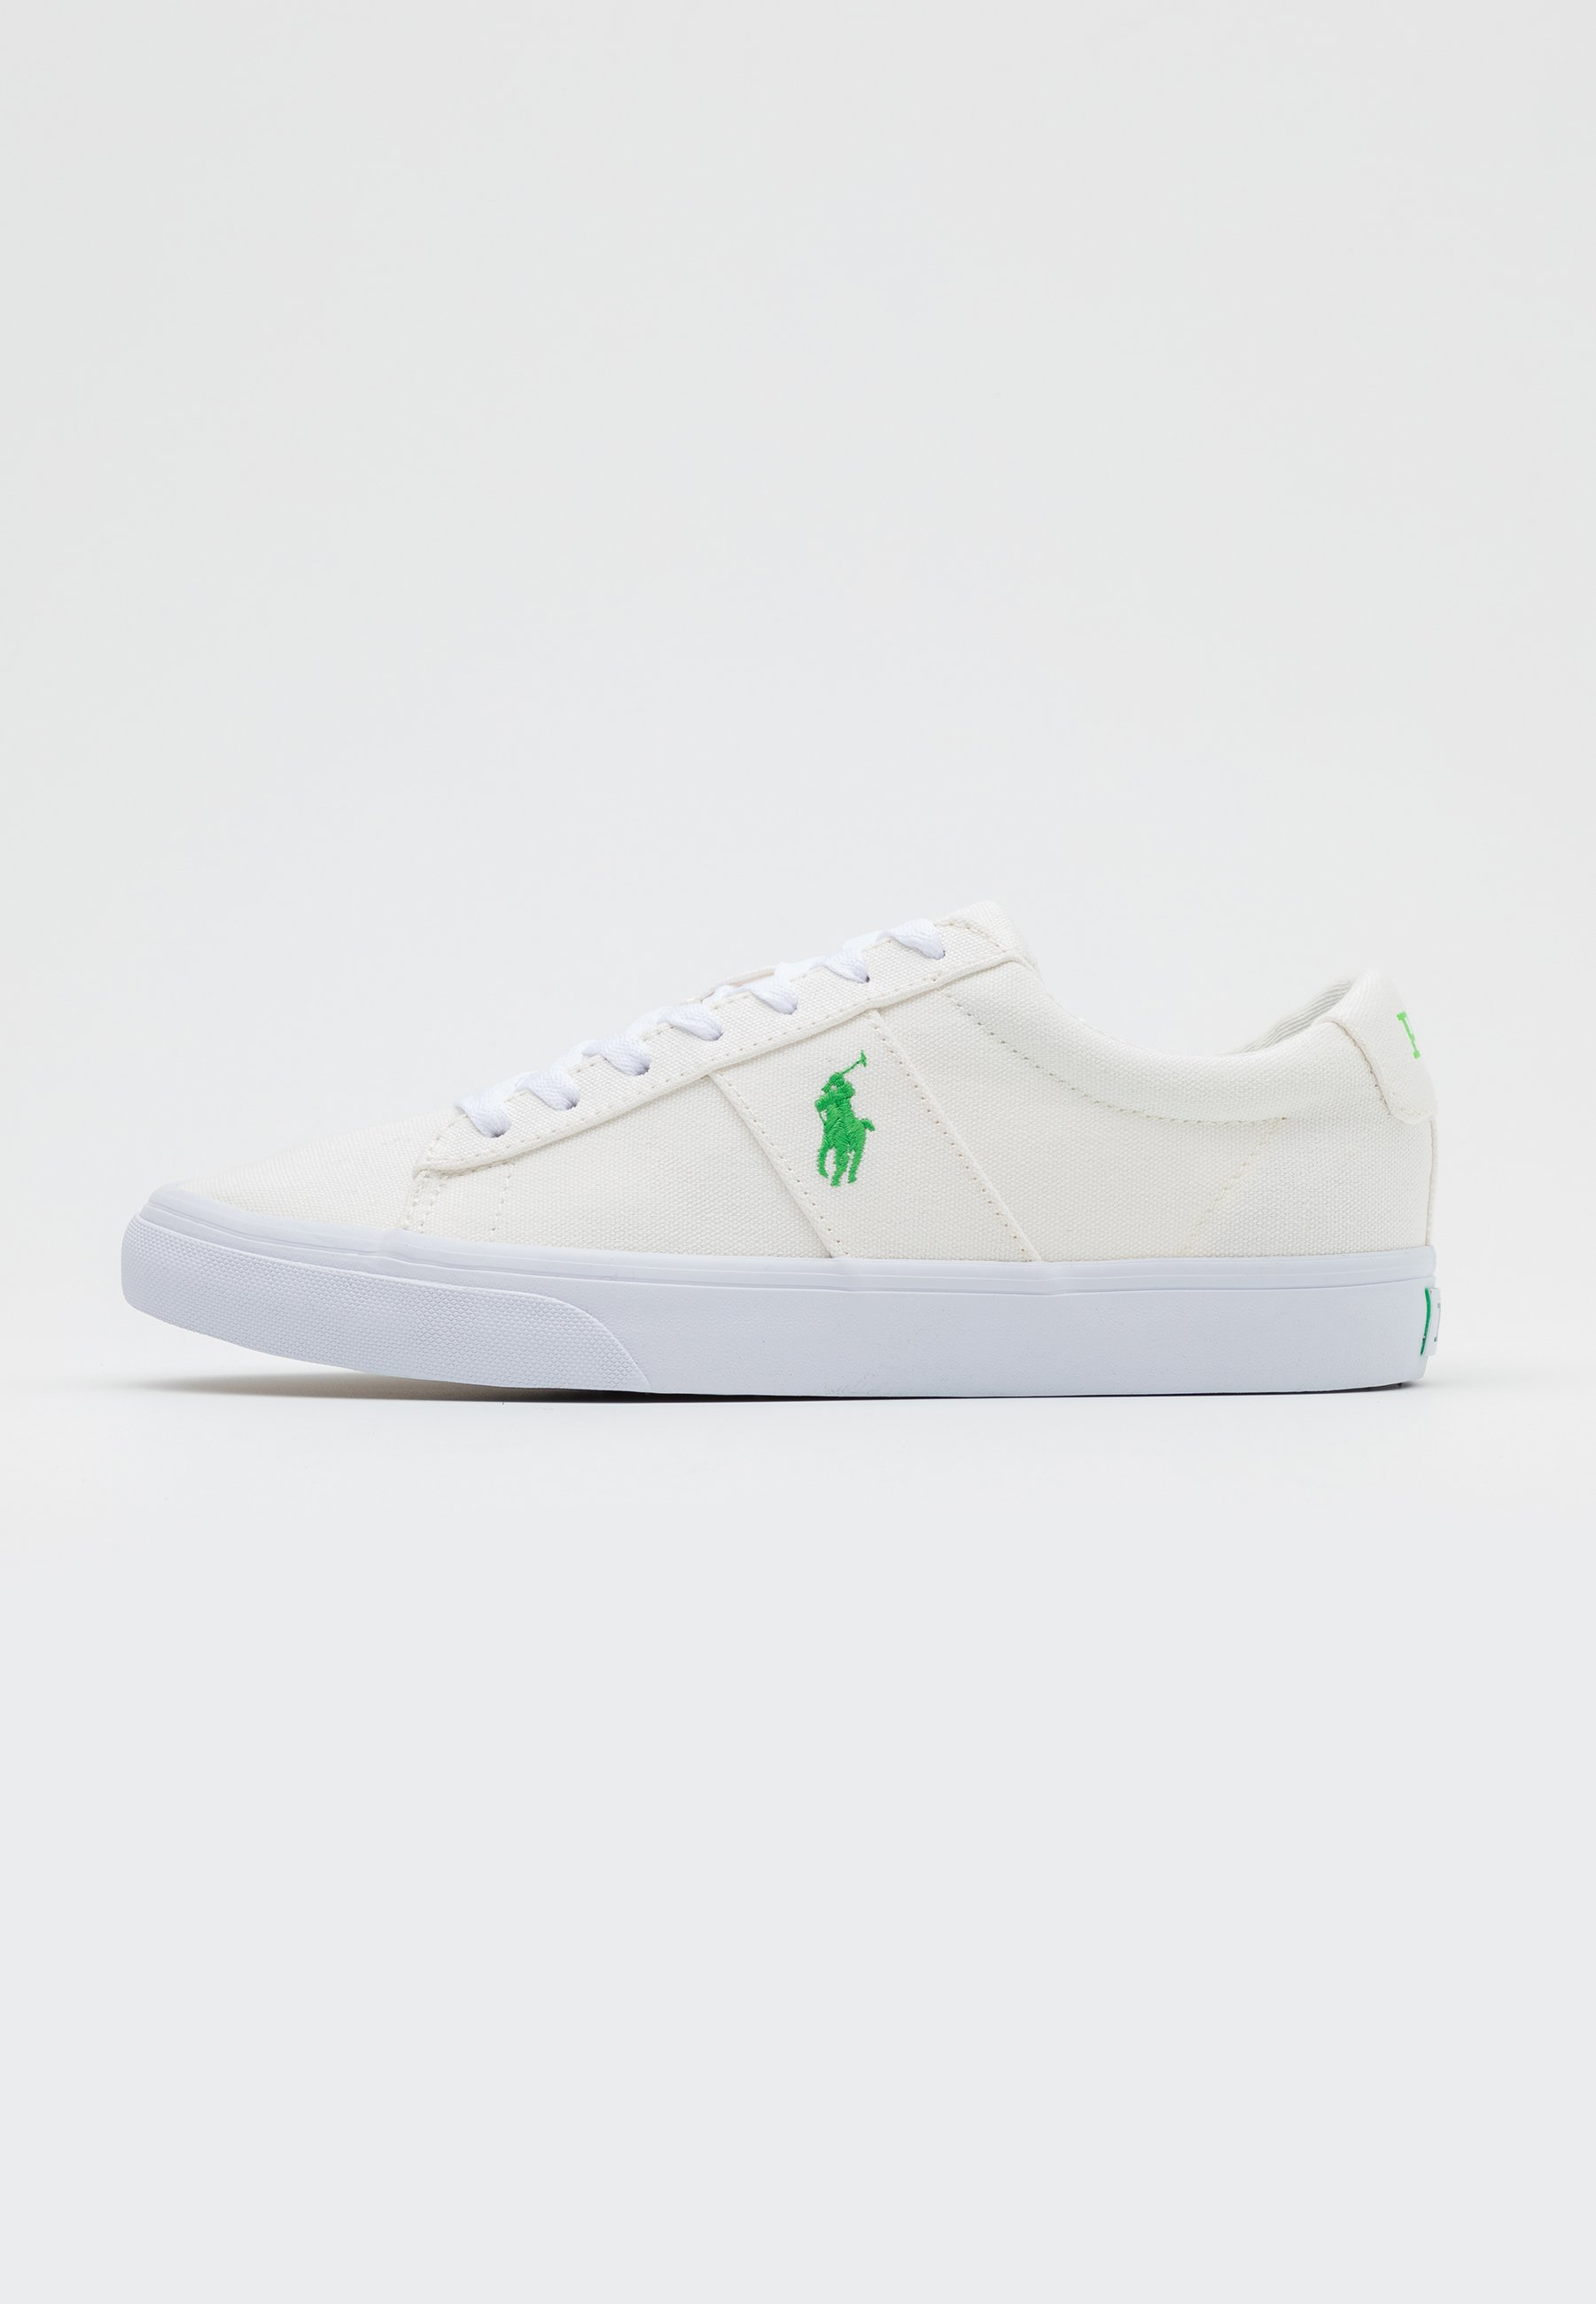 SAYER Sneakers laag whiteneon green